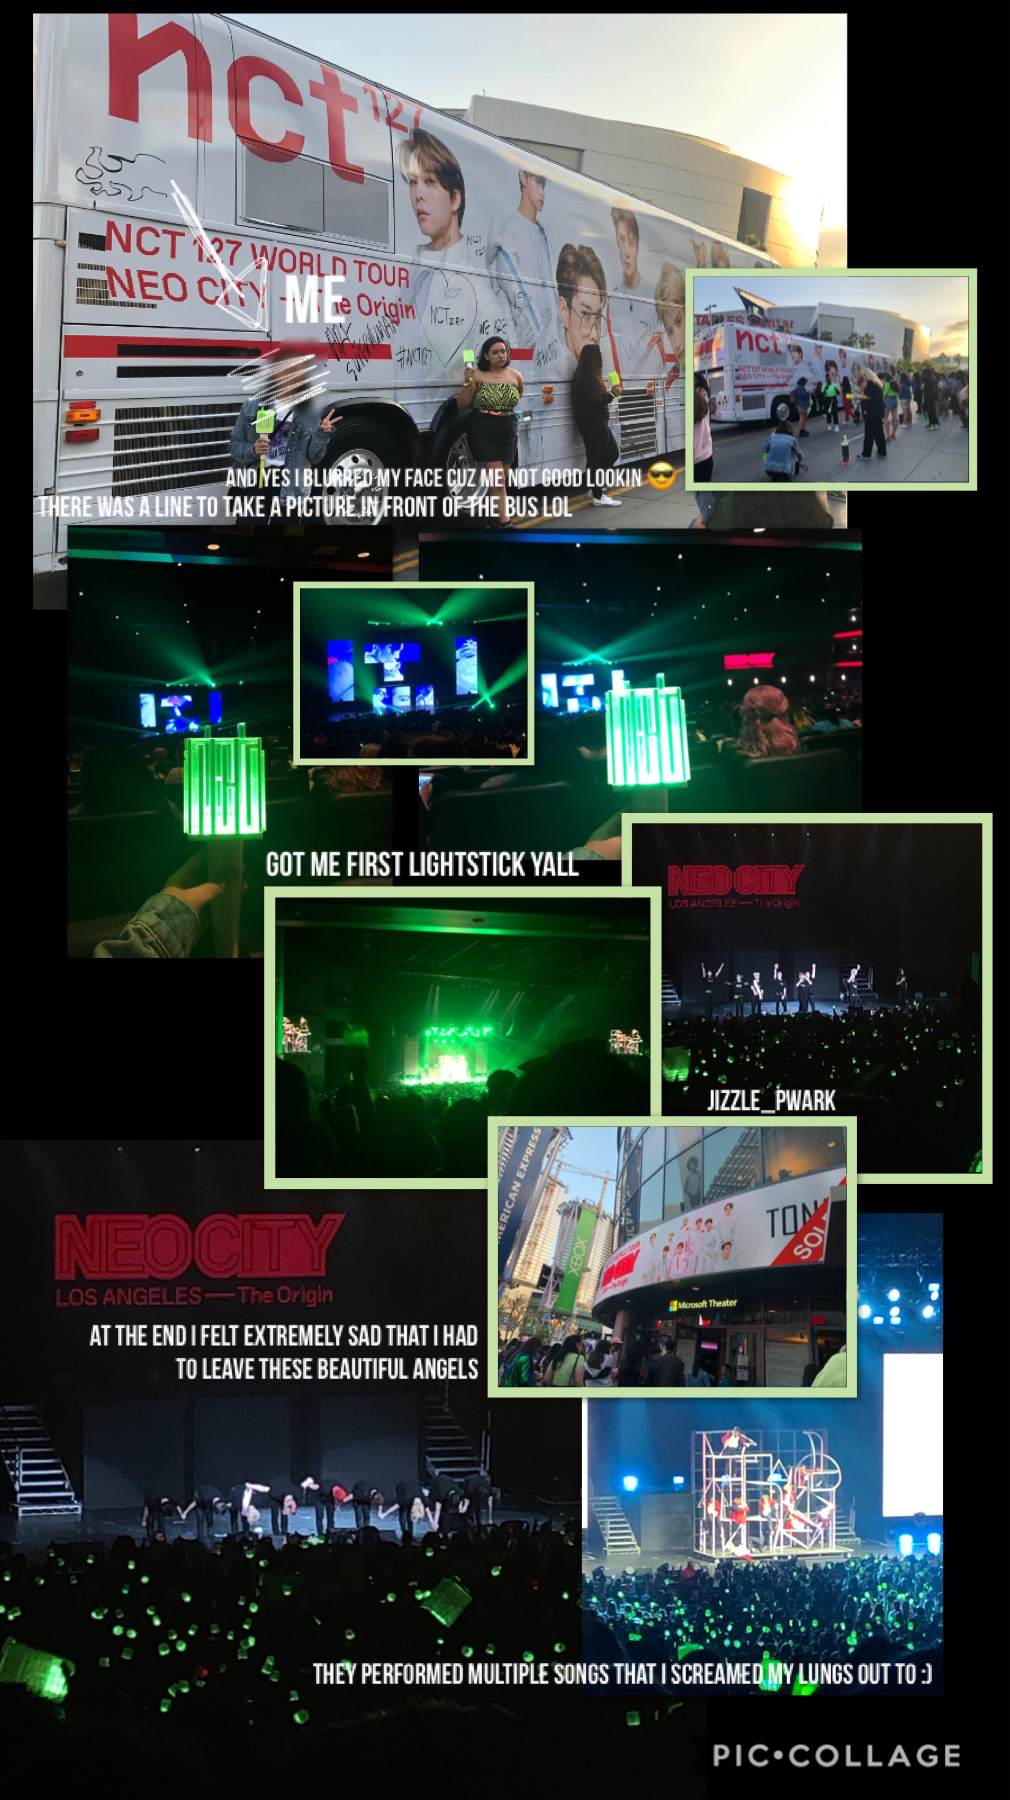 NCT L.A. CONCERT EXPERIENCE